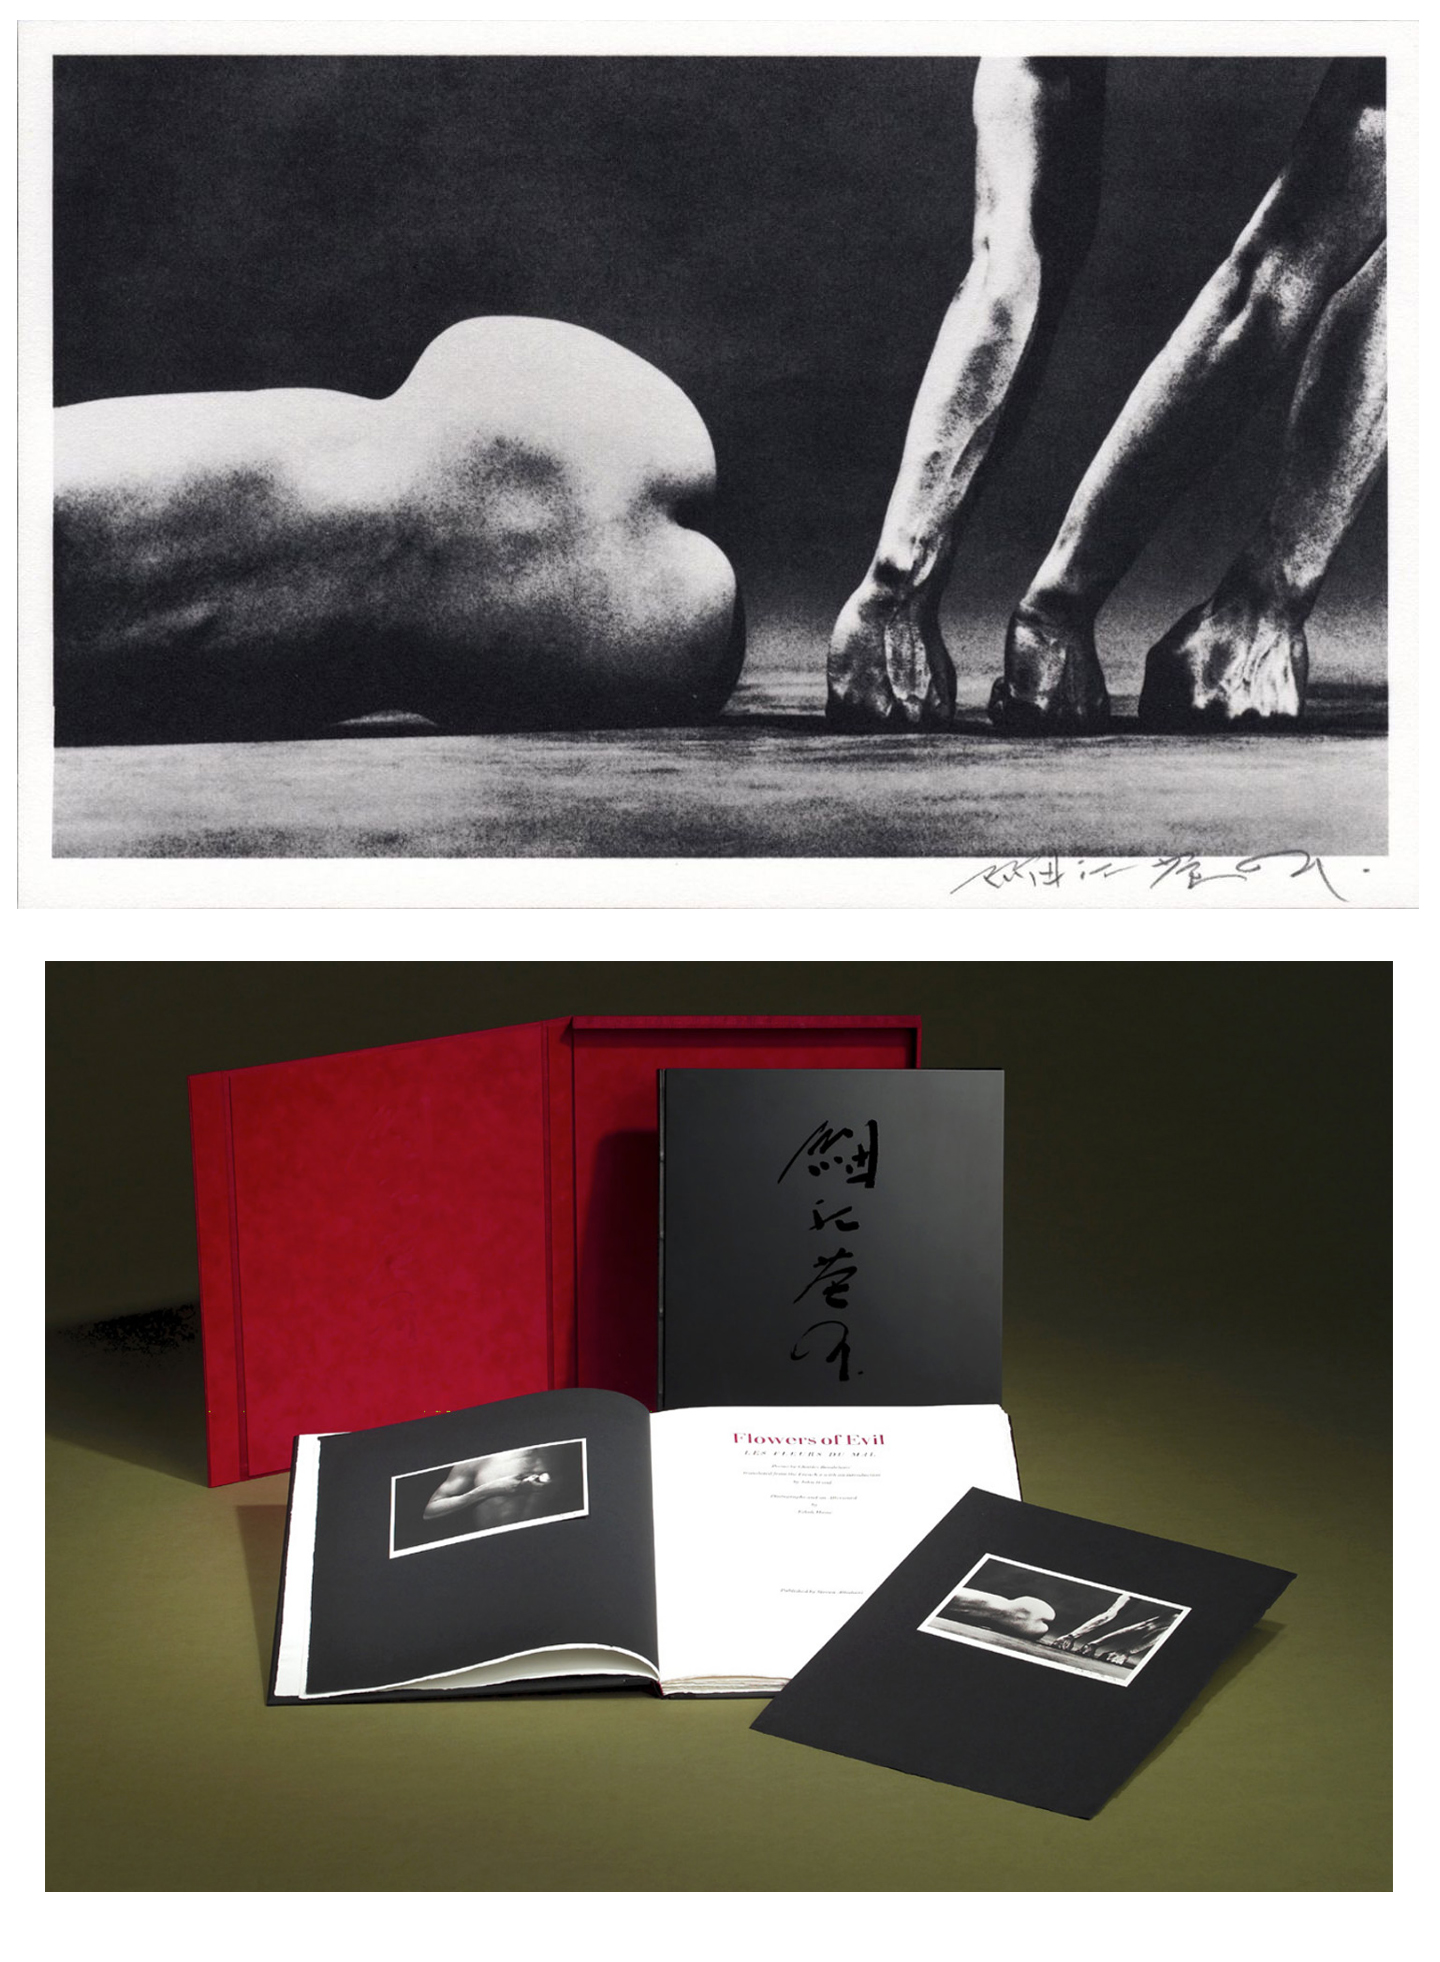 Eikoh Hosoe: Flowers of Evil, Limited Edition (with Platinum Prints)